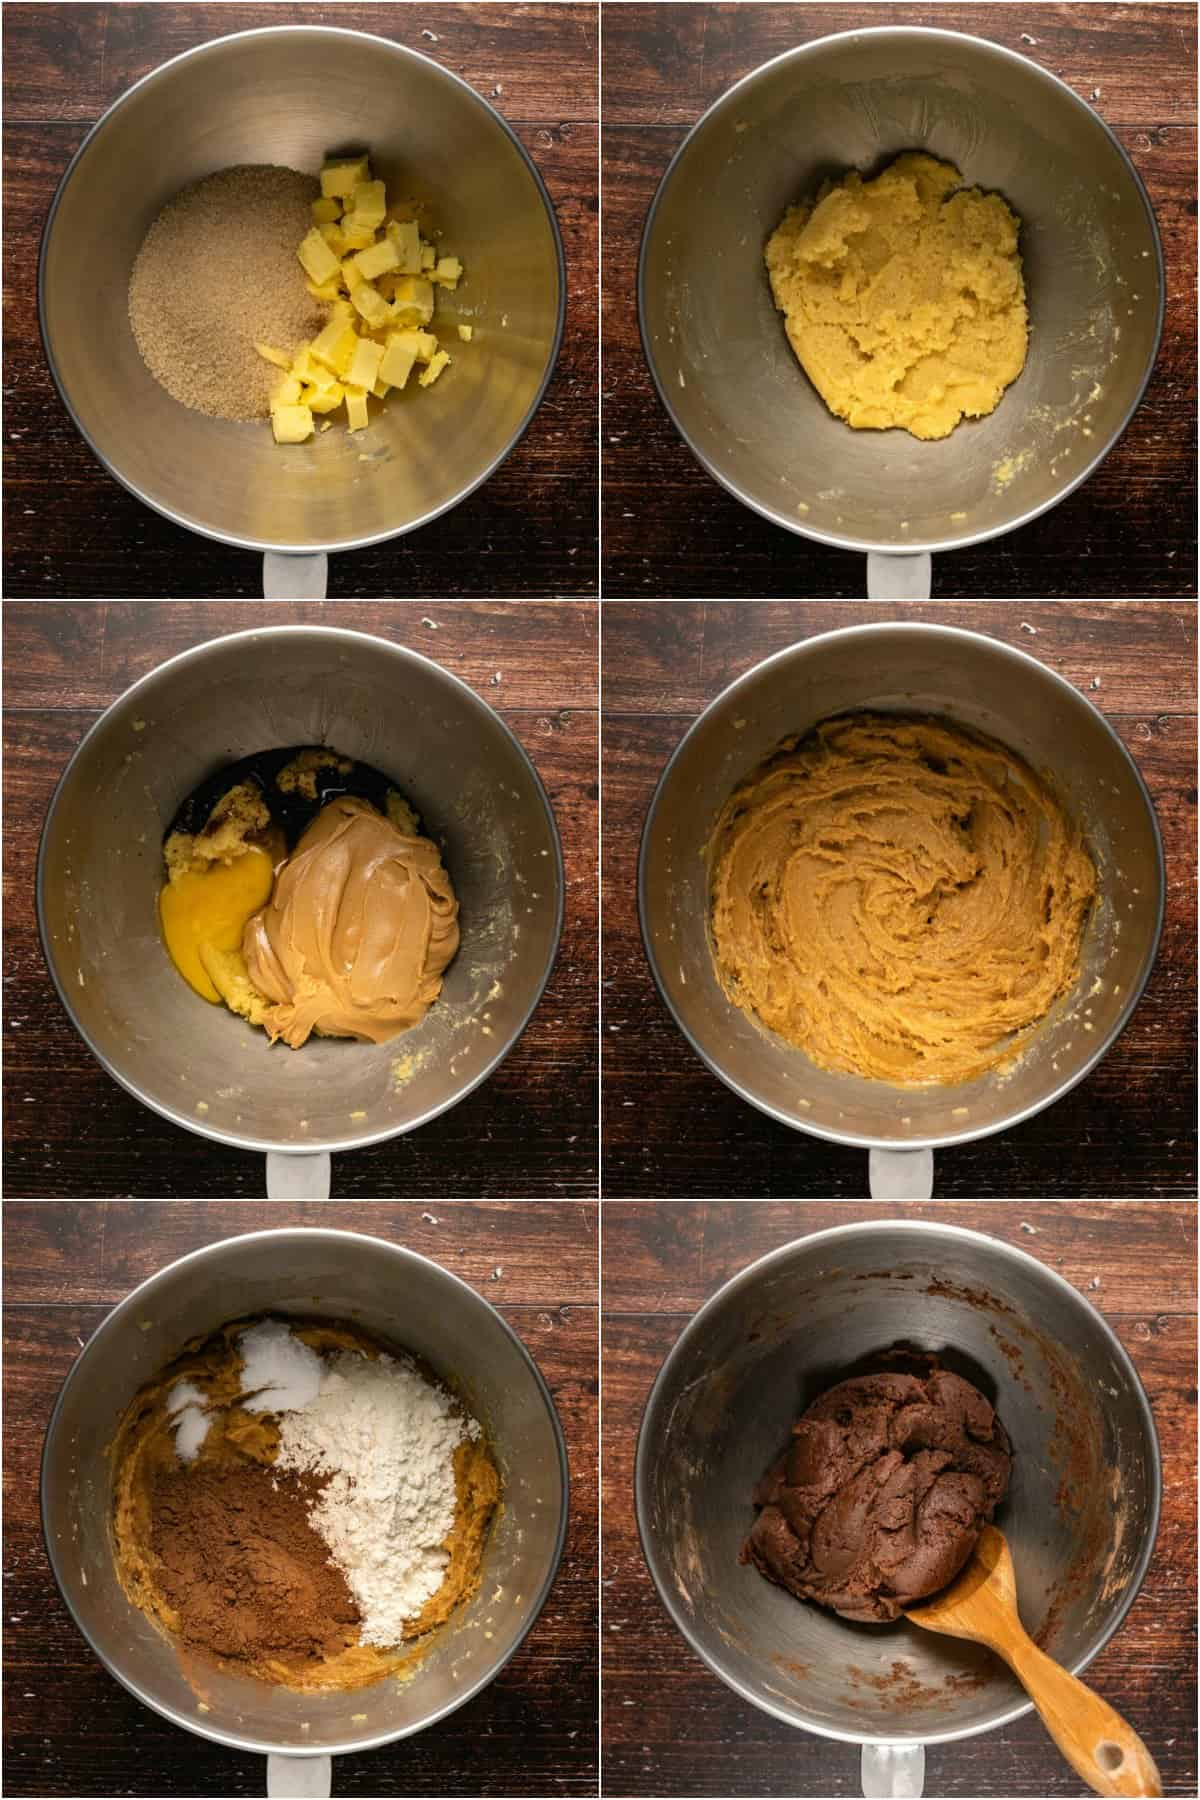 Step by step process photo collage of making cookie dough for chocolate peanut butter cookies.